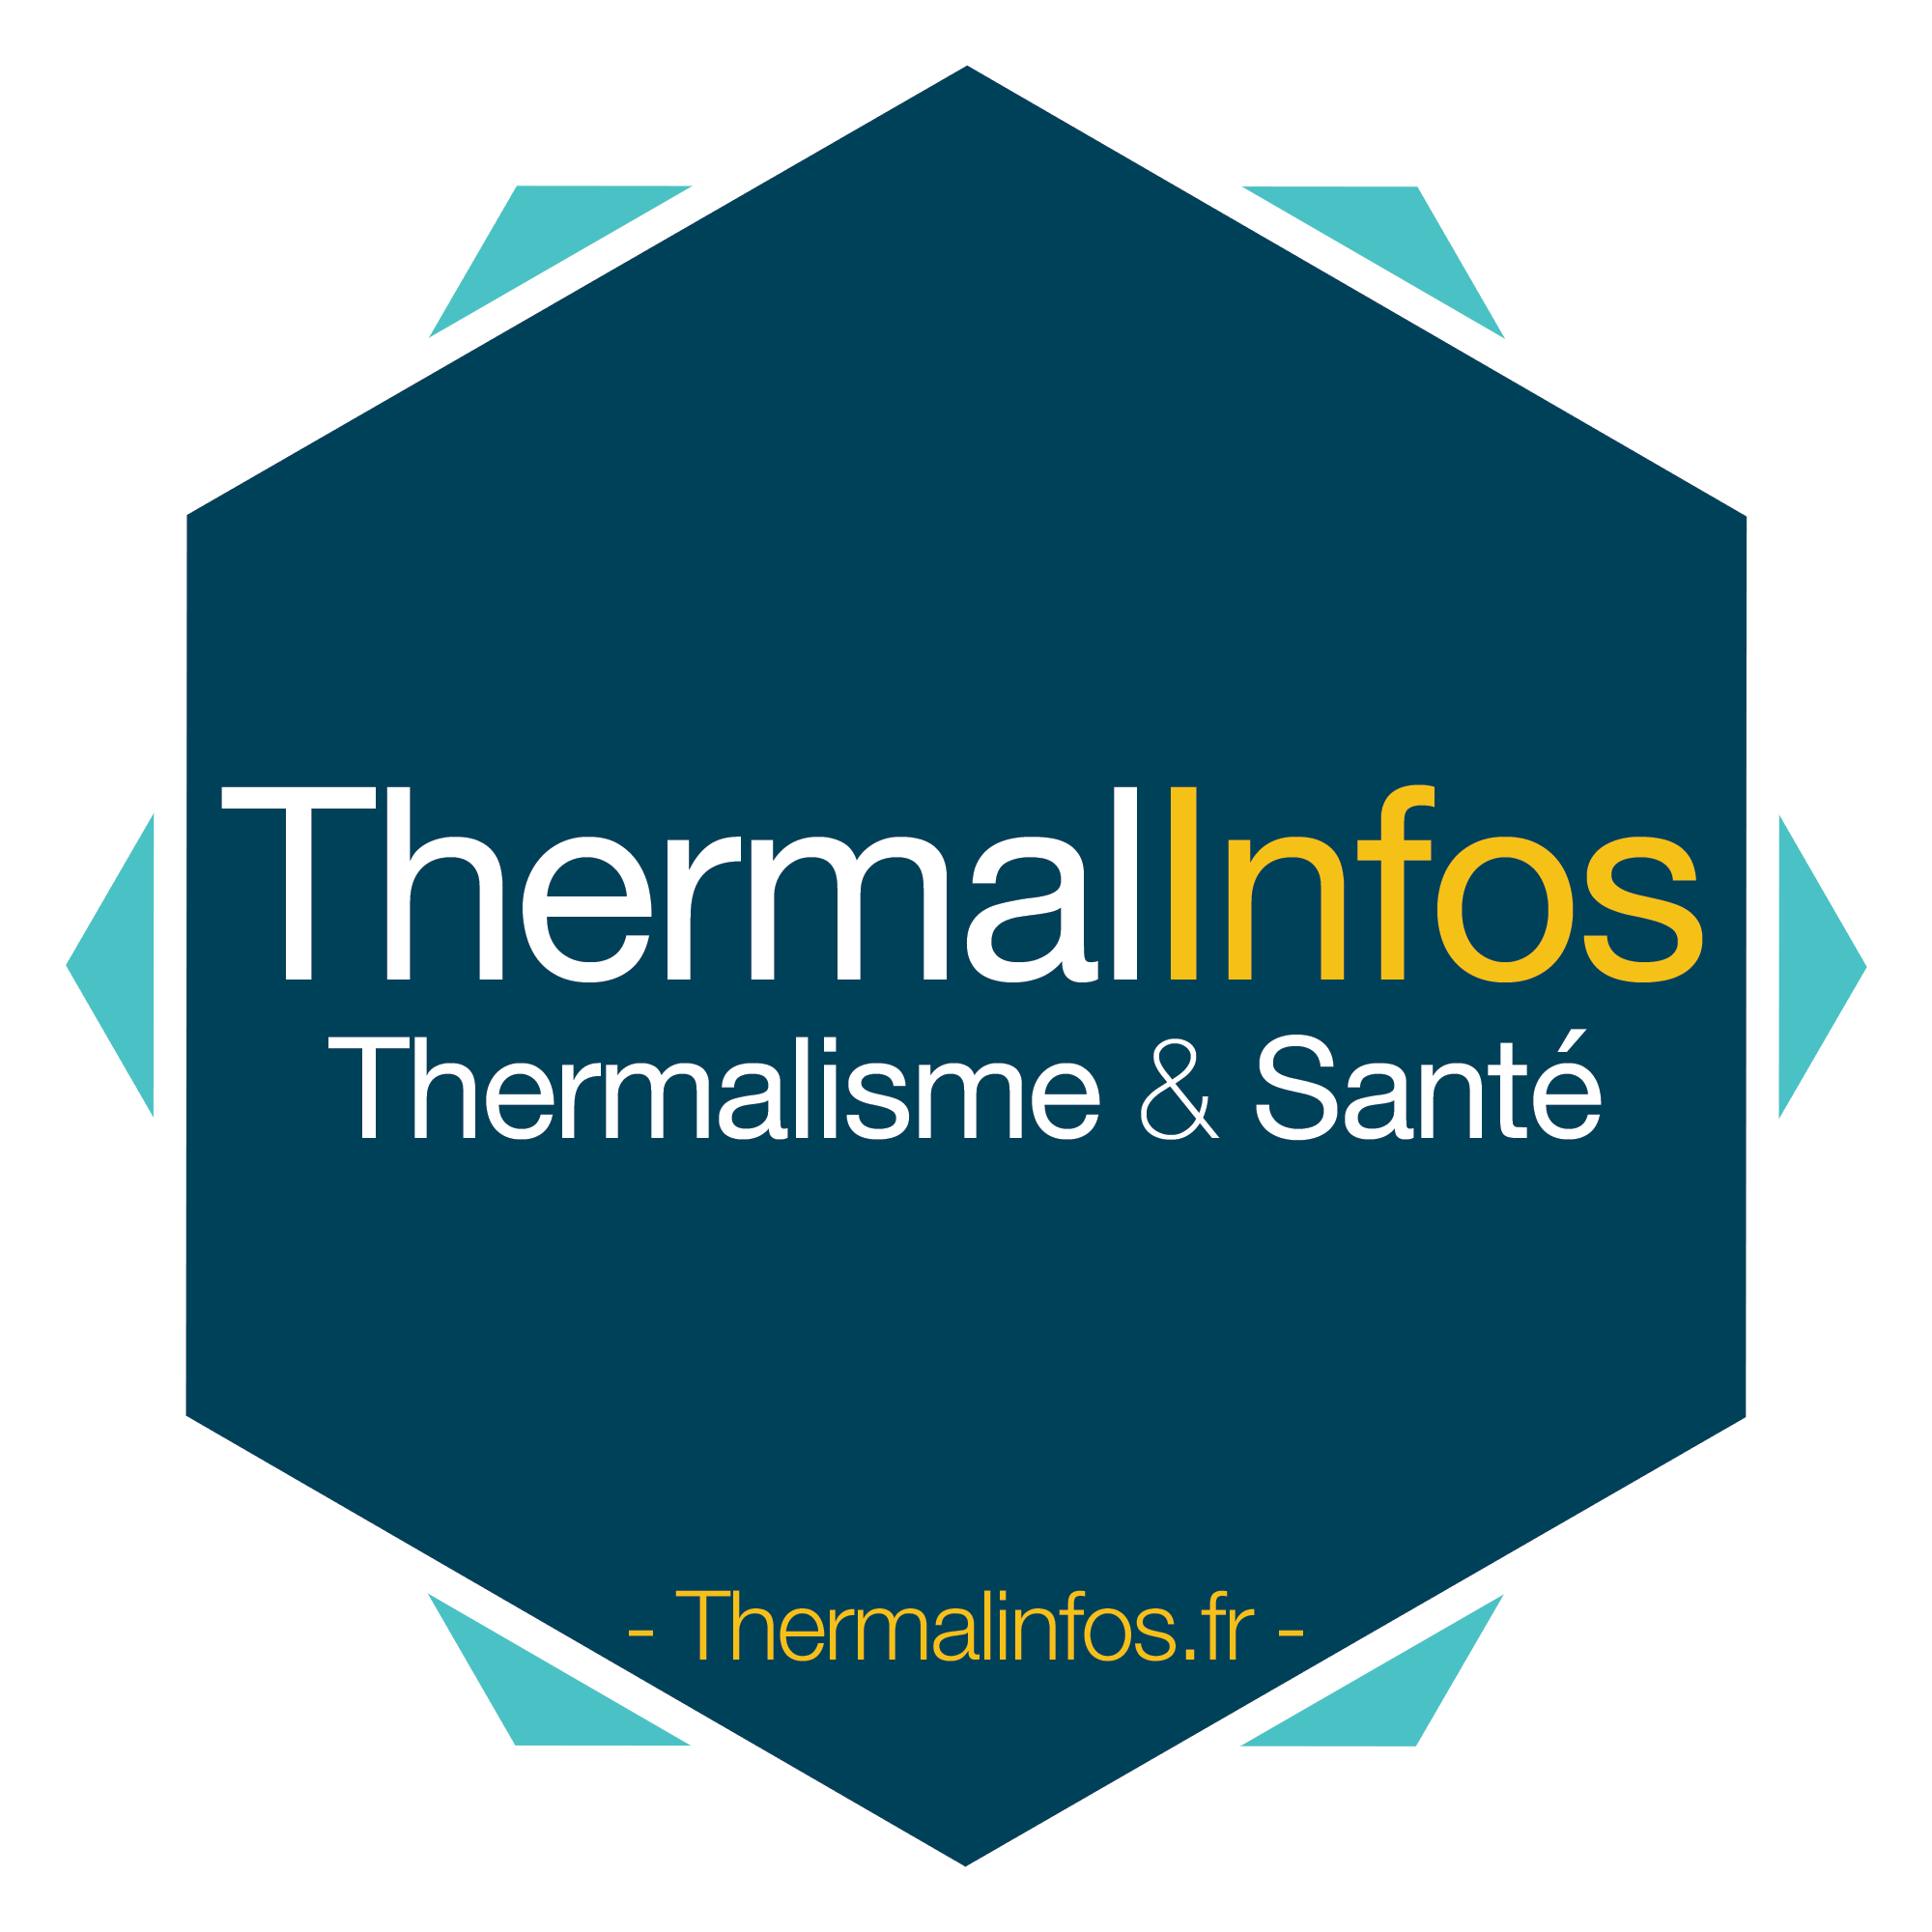 logo thermalinfos